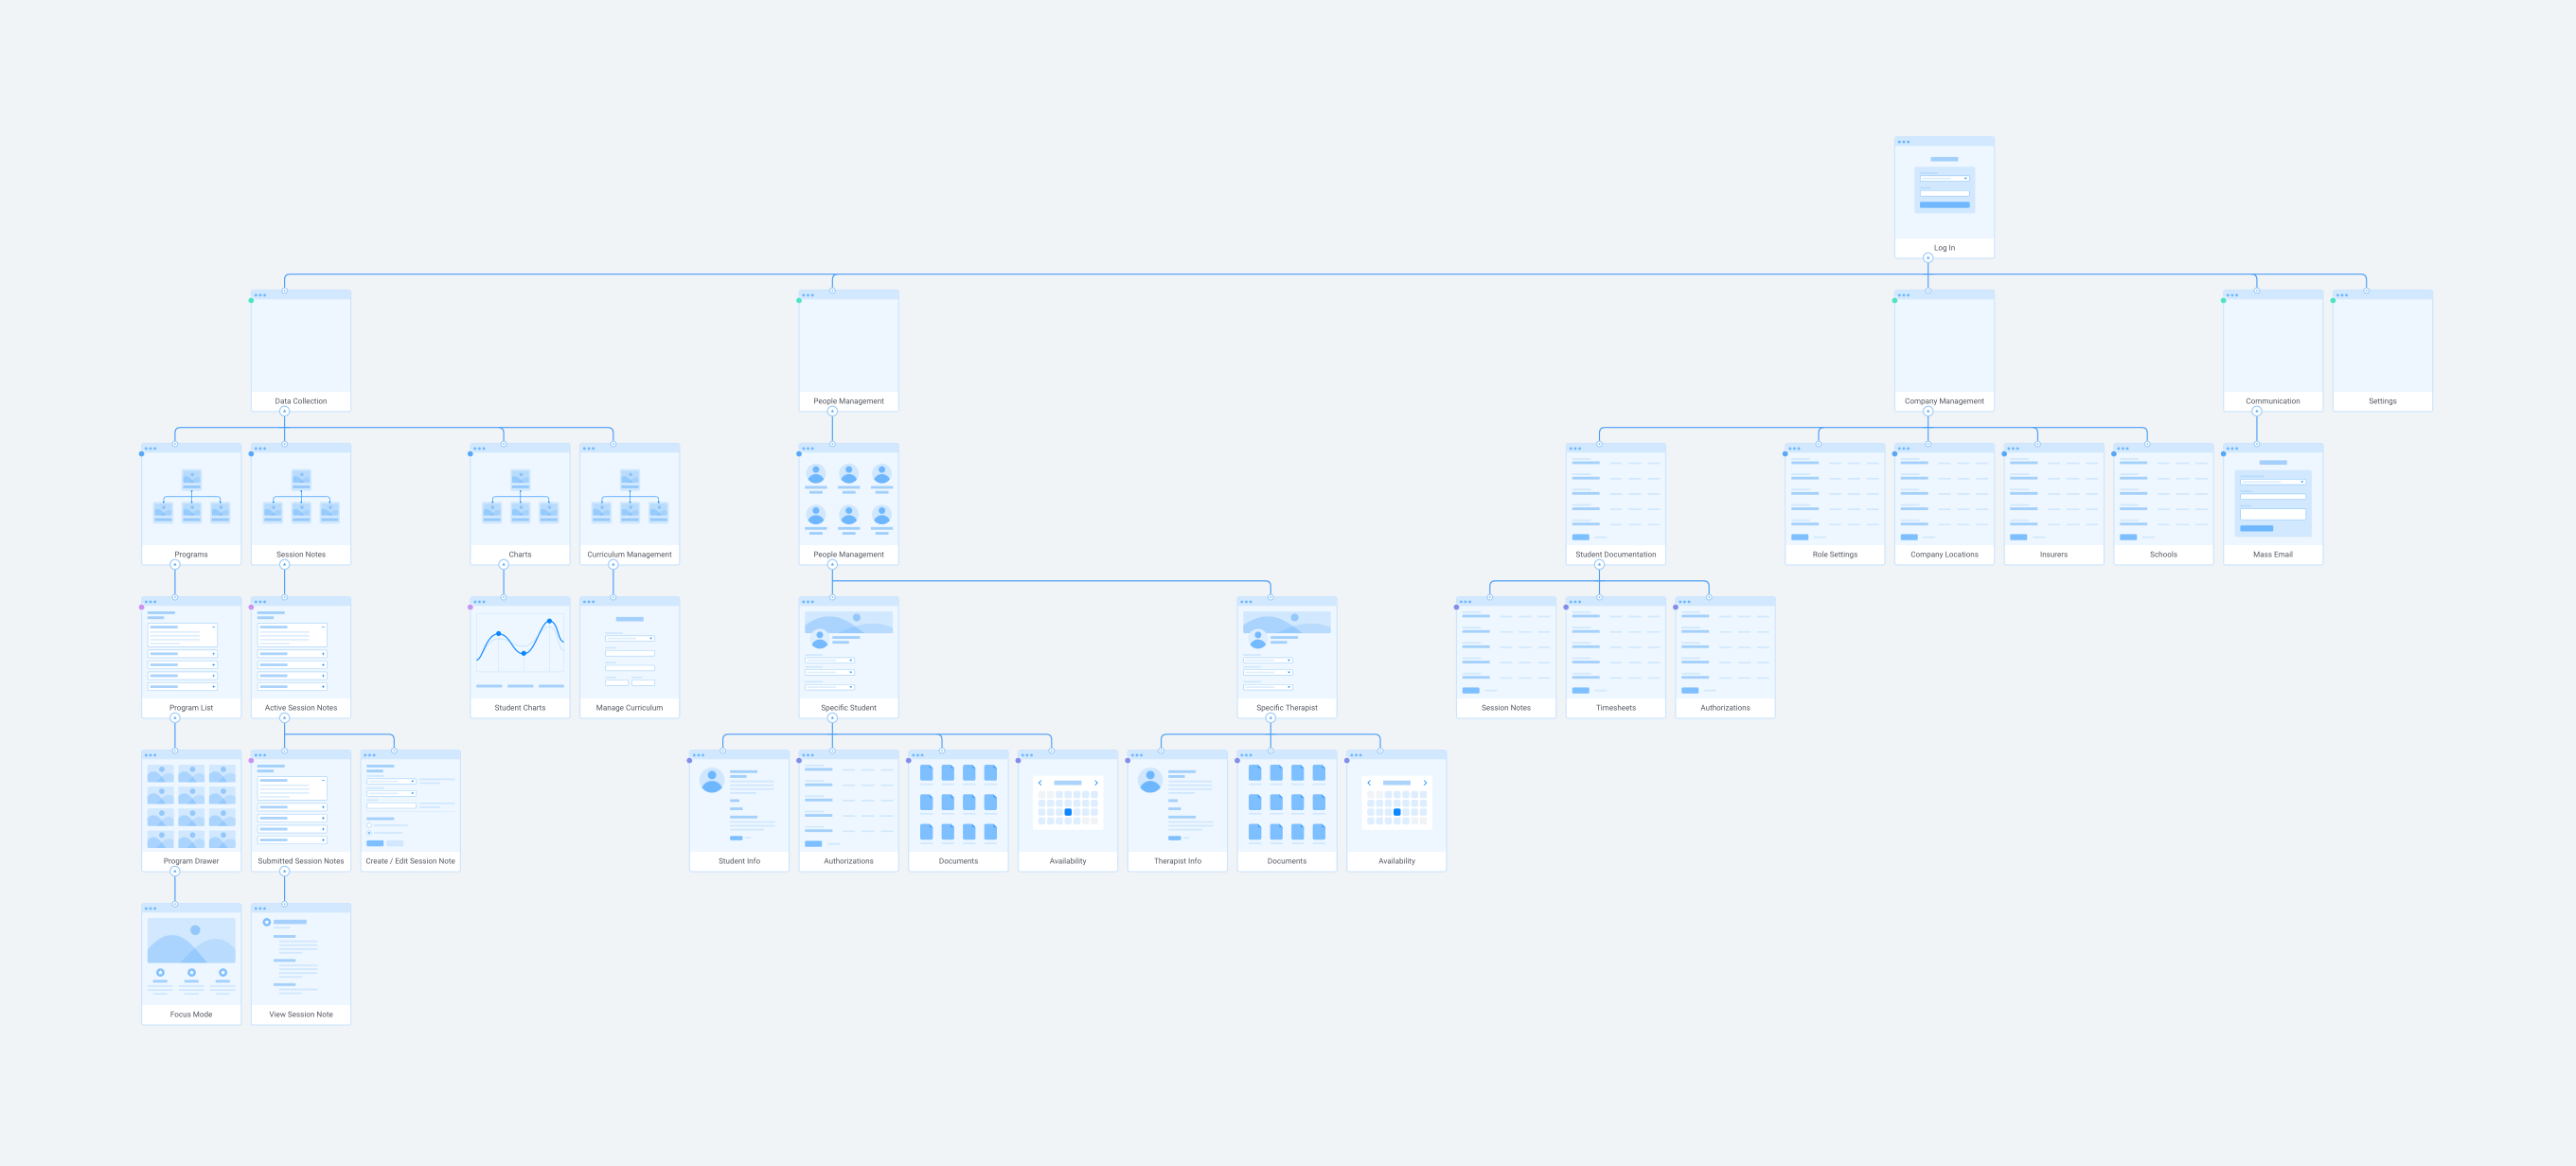 A flow chart showing the information architecture of the Thread web app